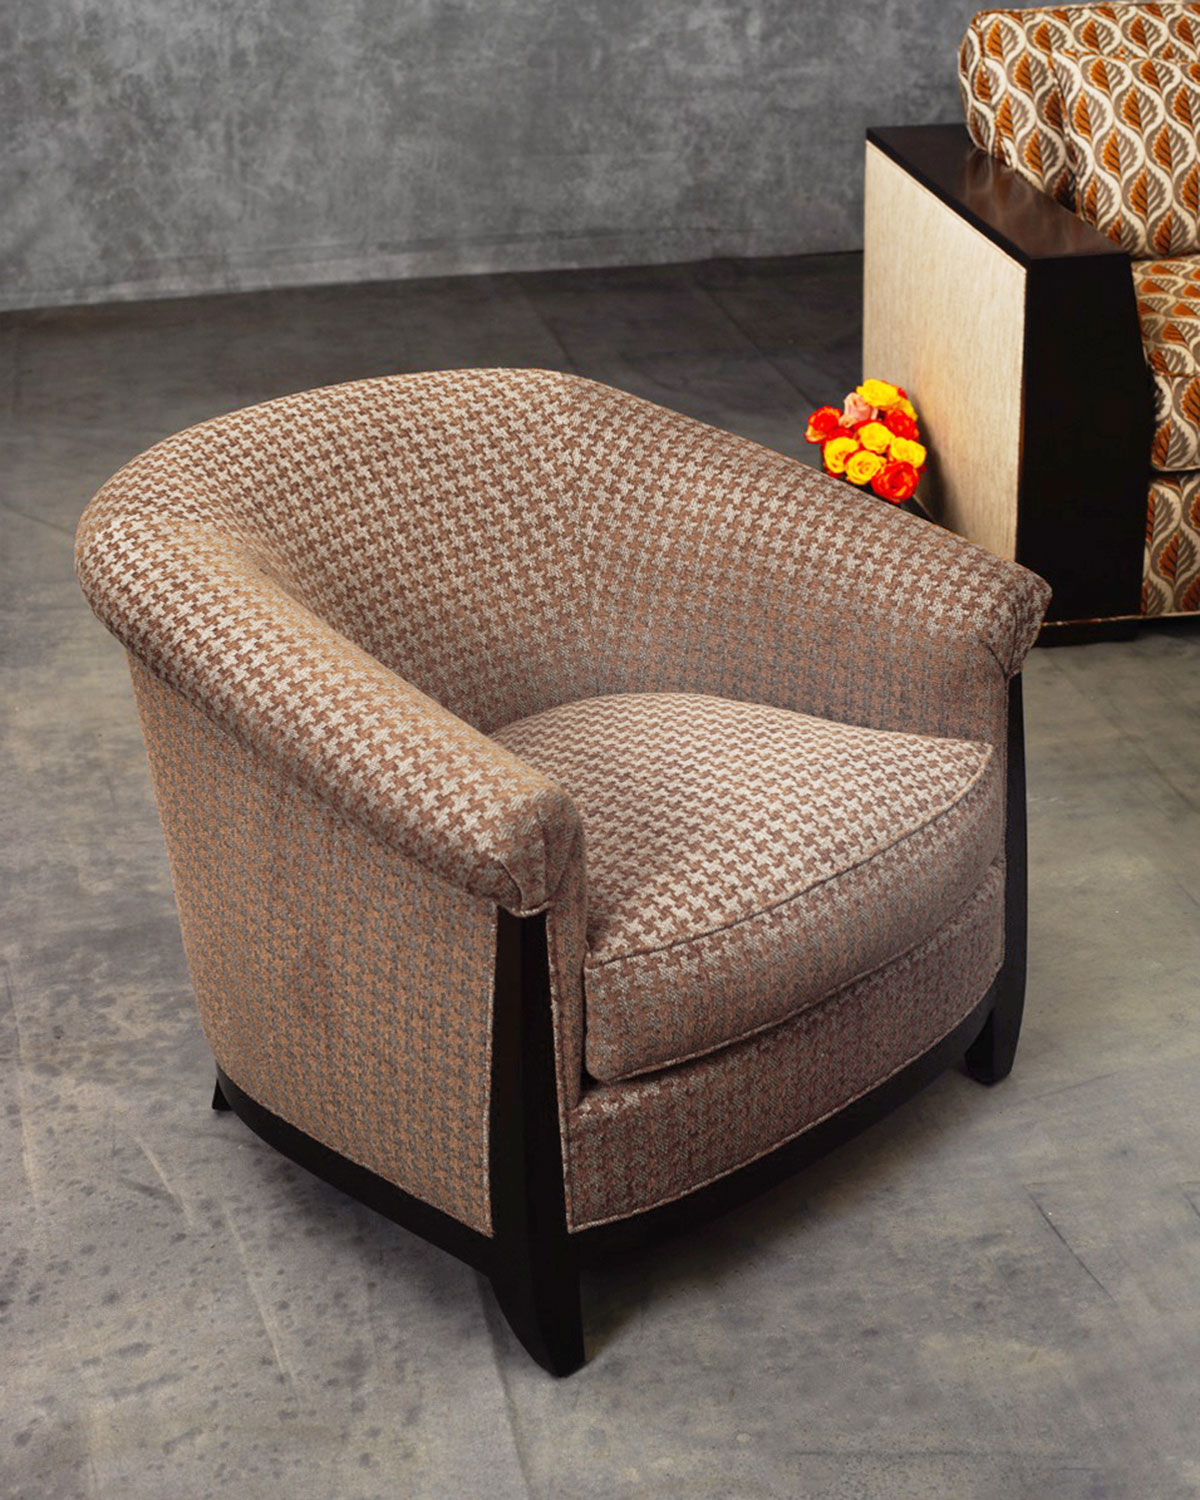 Innova Luxury Bel Air Houndstooth Lounge Chair